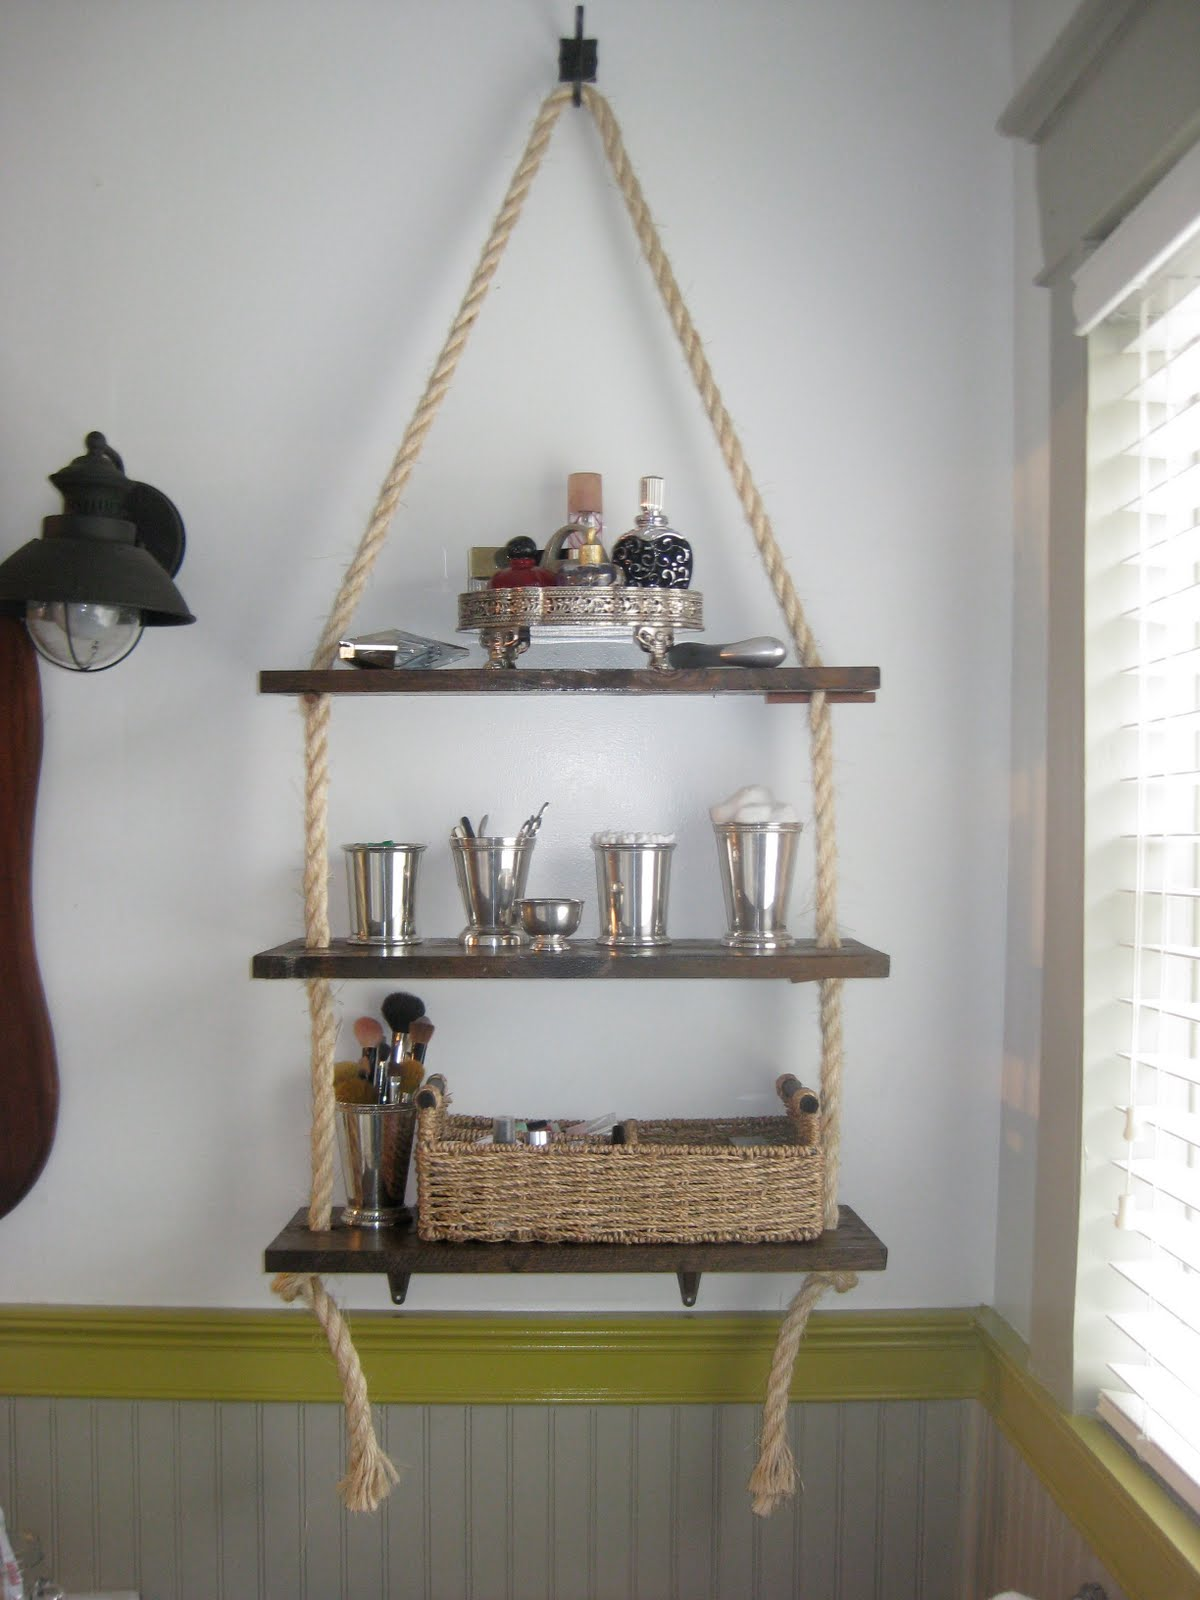 Bathroom Decorating Ideas Diy. Diy Bathroom Shelving Decorating Ideas Diy